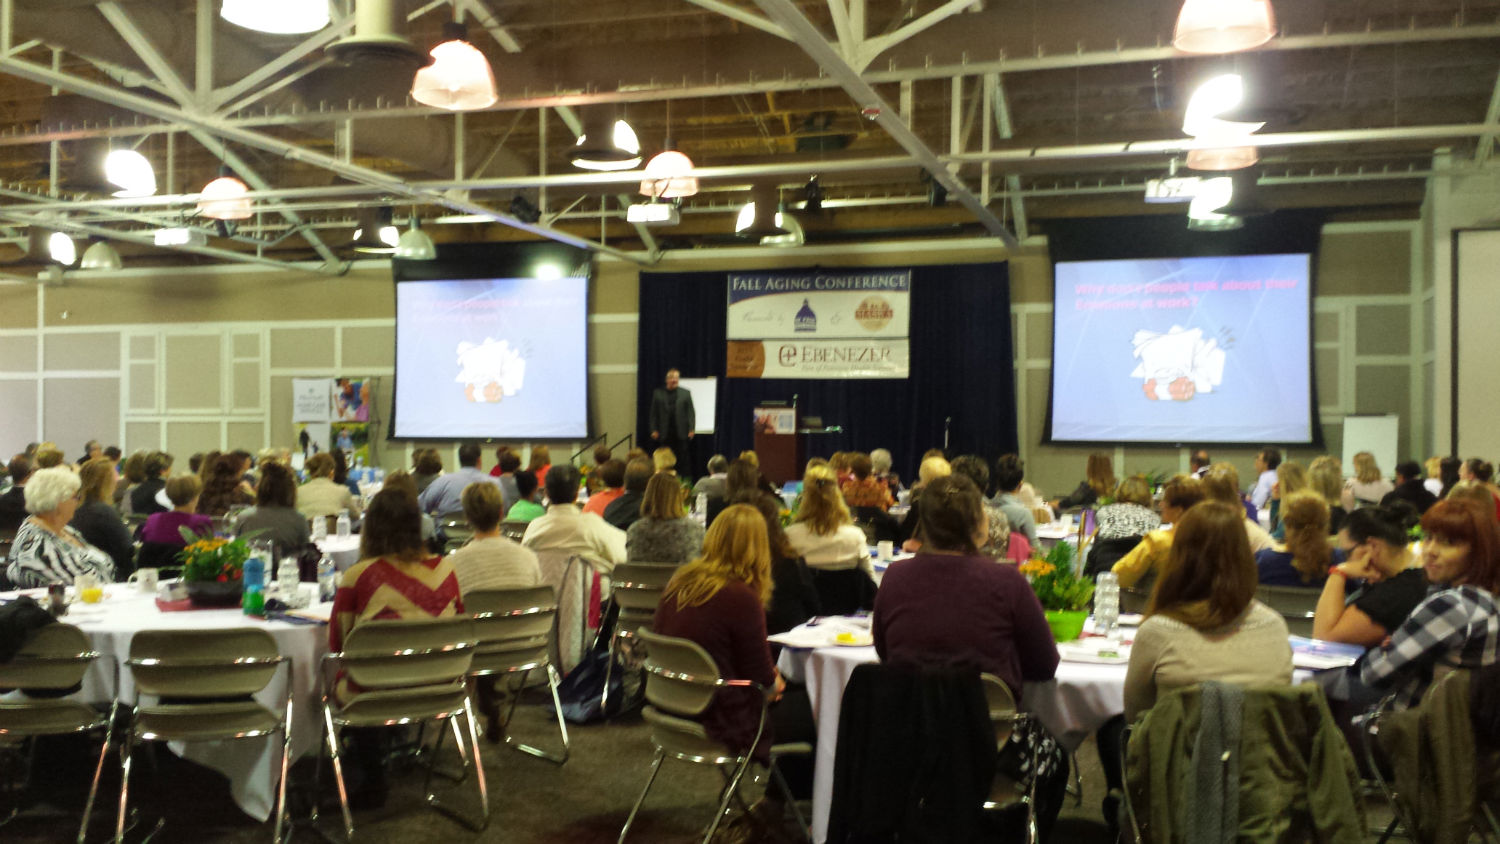 bc seminars speaking at the fall aging conference